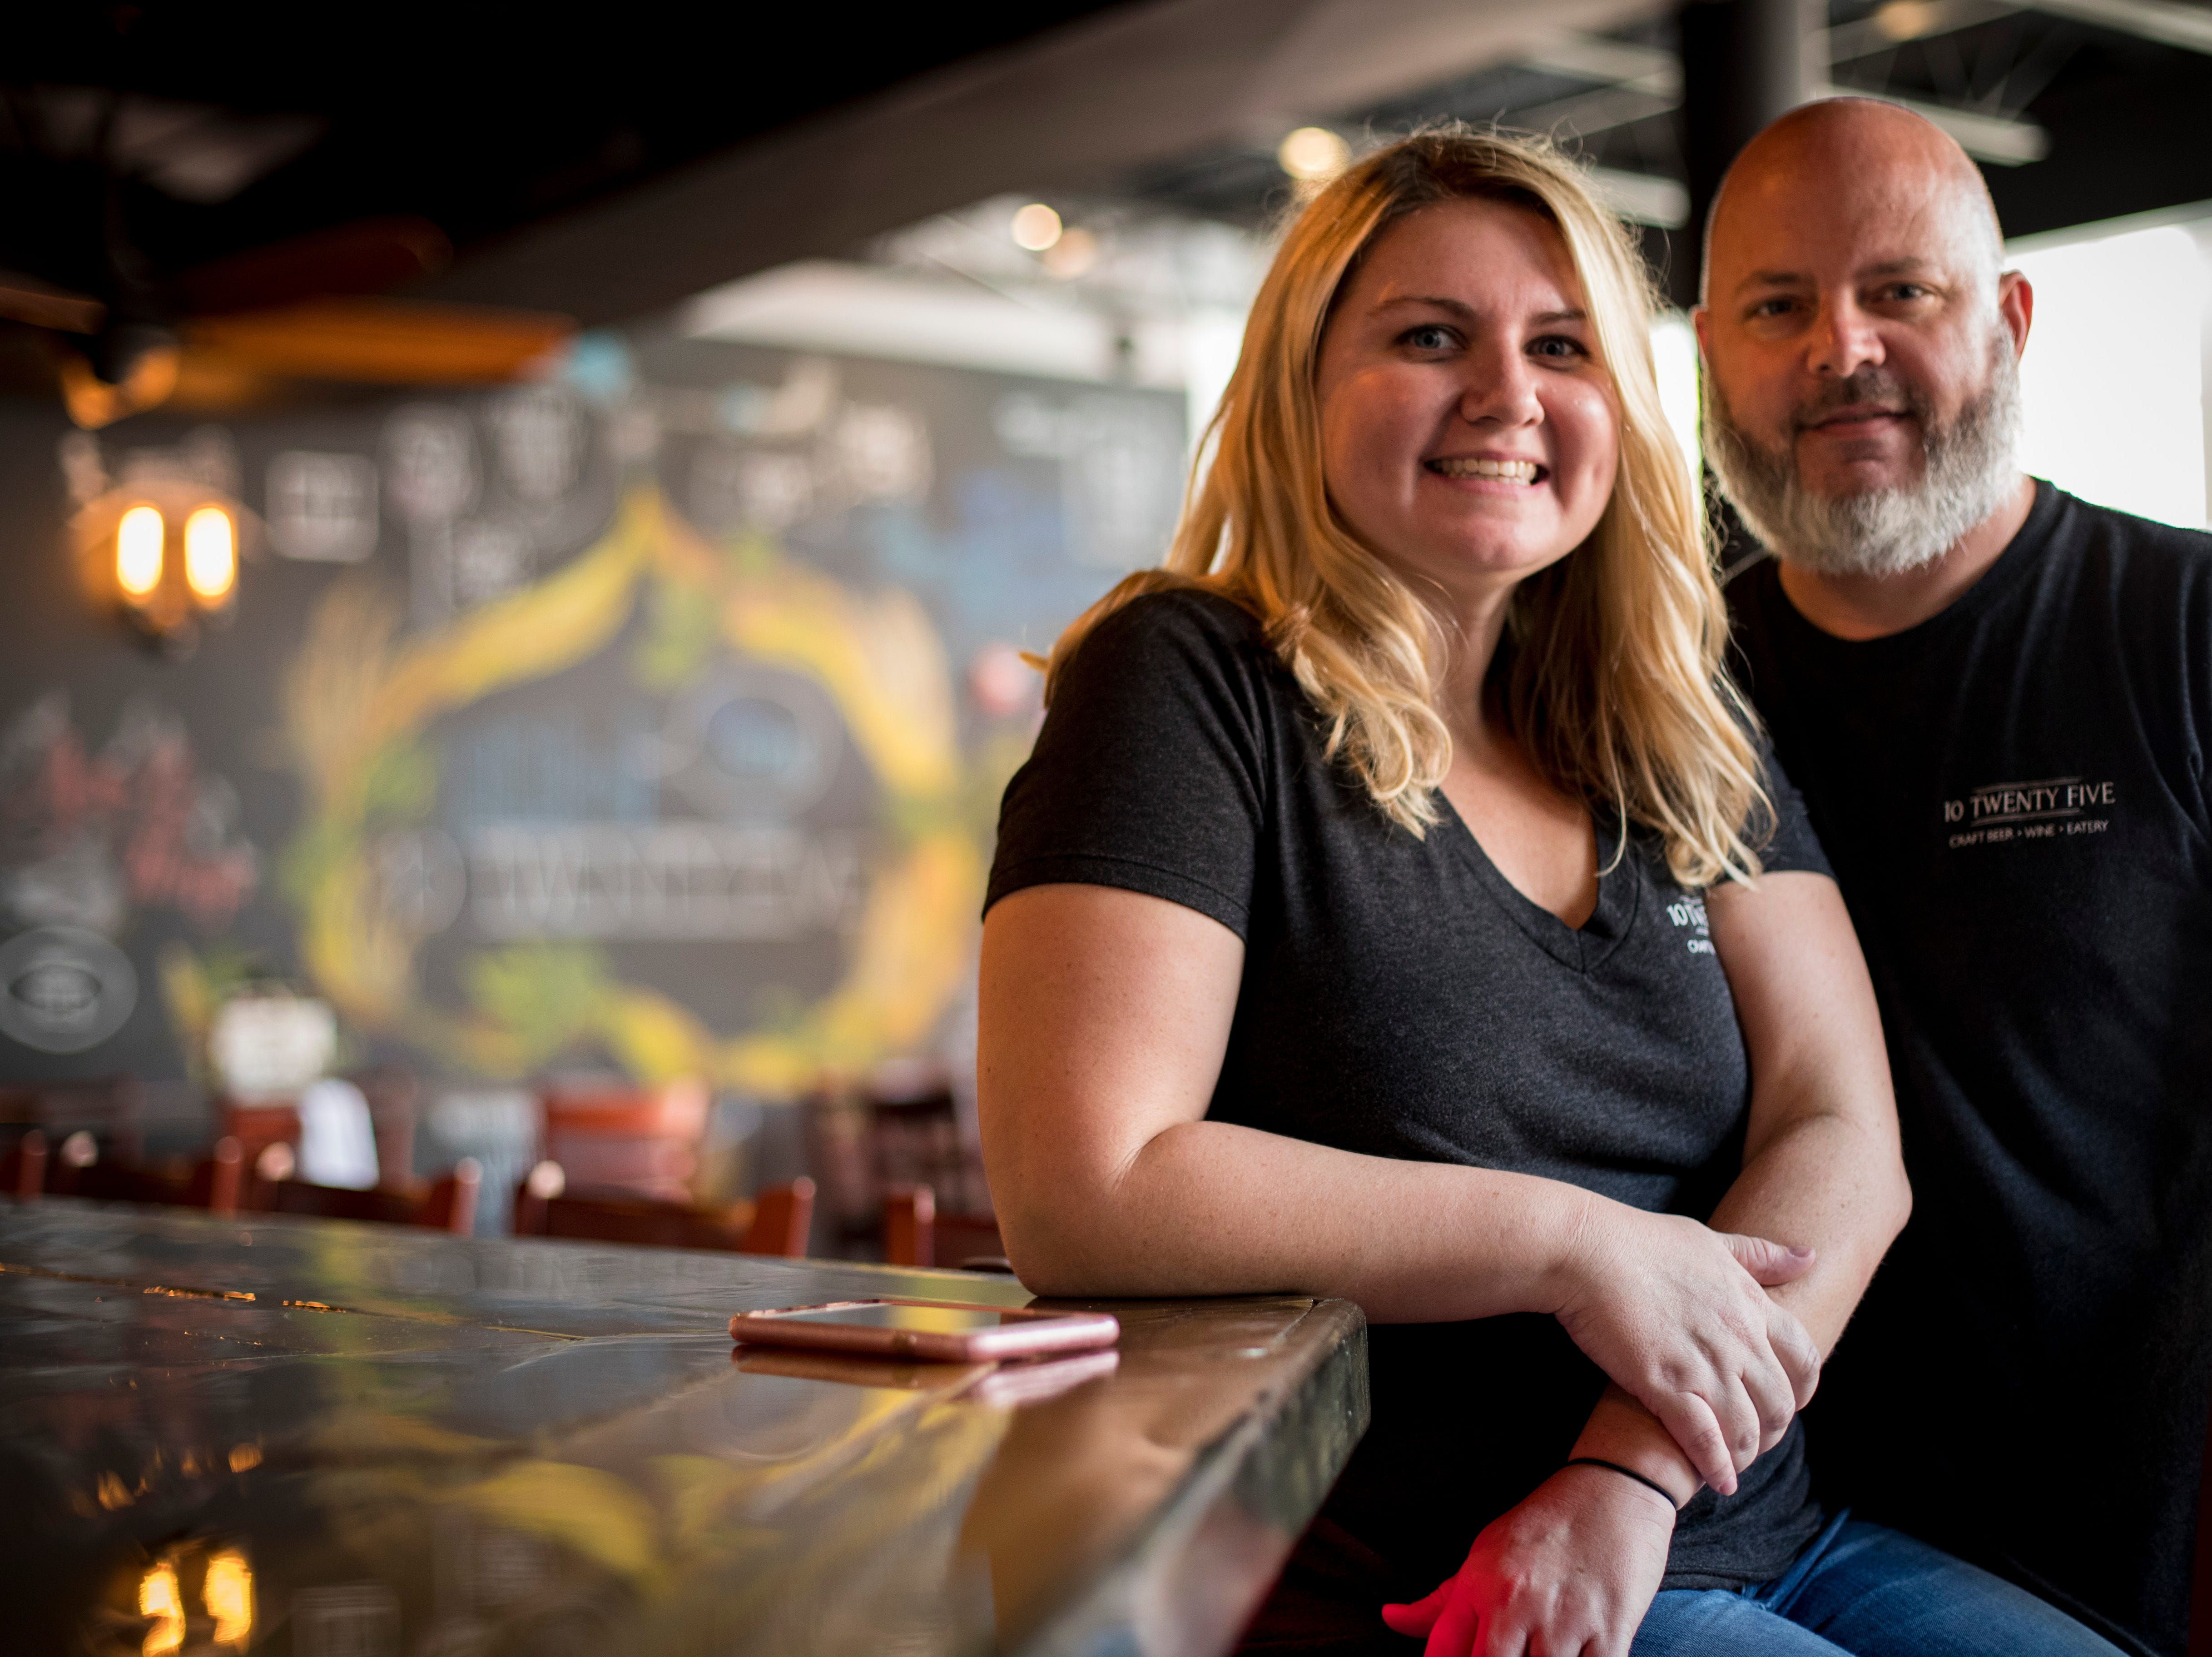 Owners Chad and Amber Zollinger just opened their second spot for their popular restaurant, 10 Twenty Five. The restaurant is opening in downtown Fort Myers, making it the second location for the local restaurant, which opened its first store in Cape Coral in fall 2016.